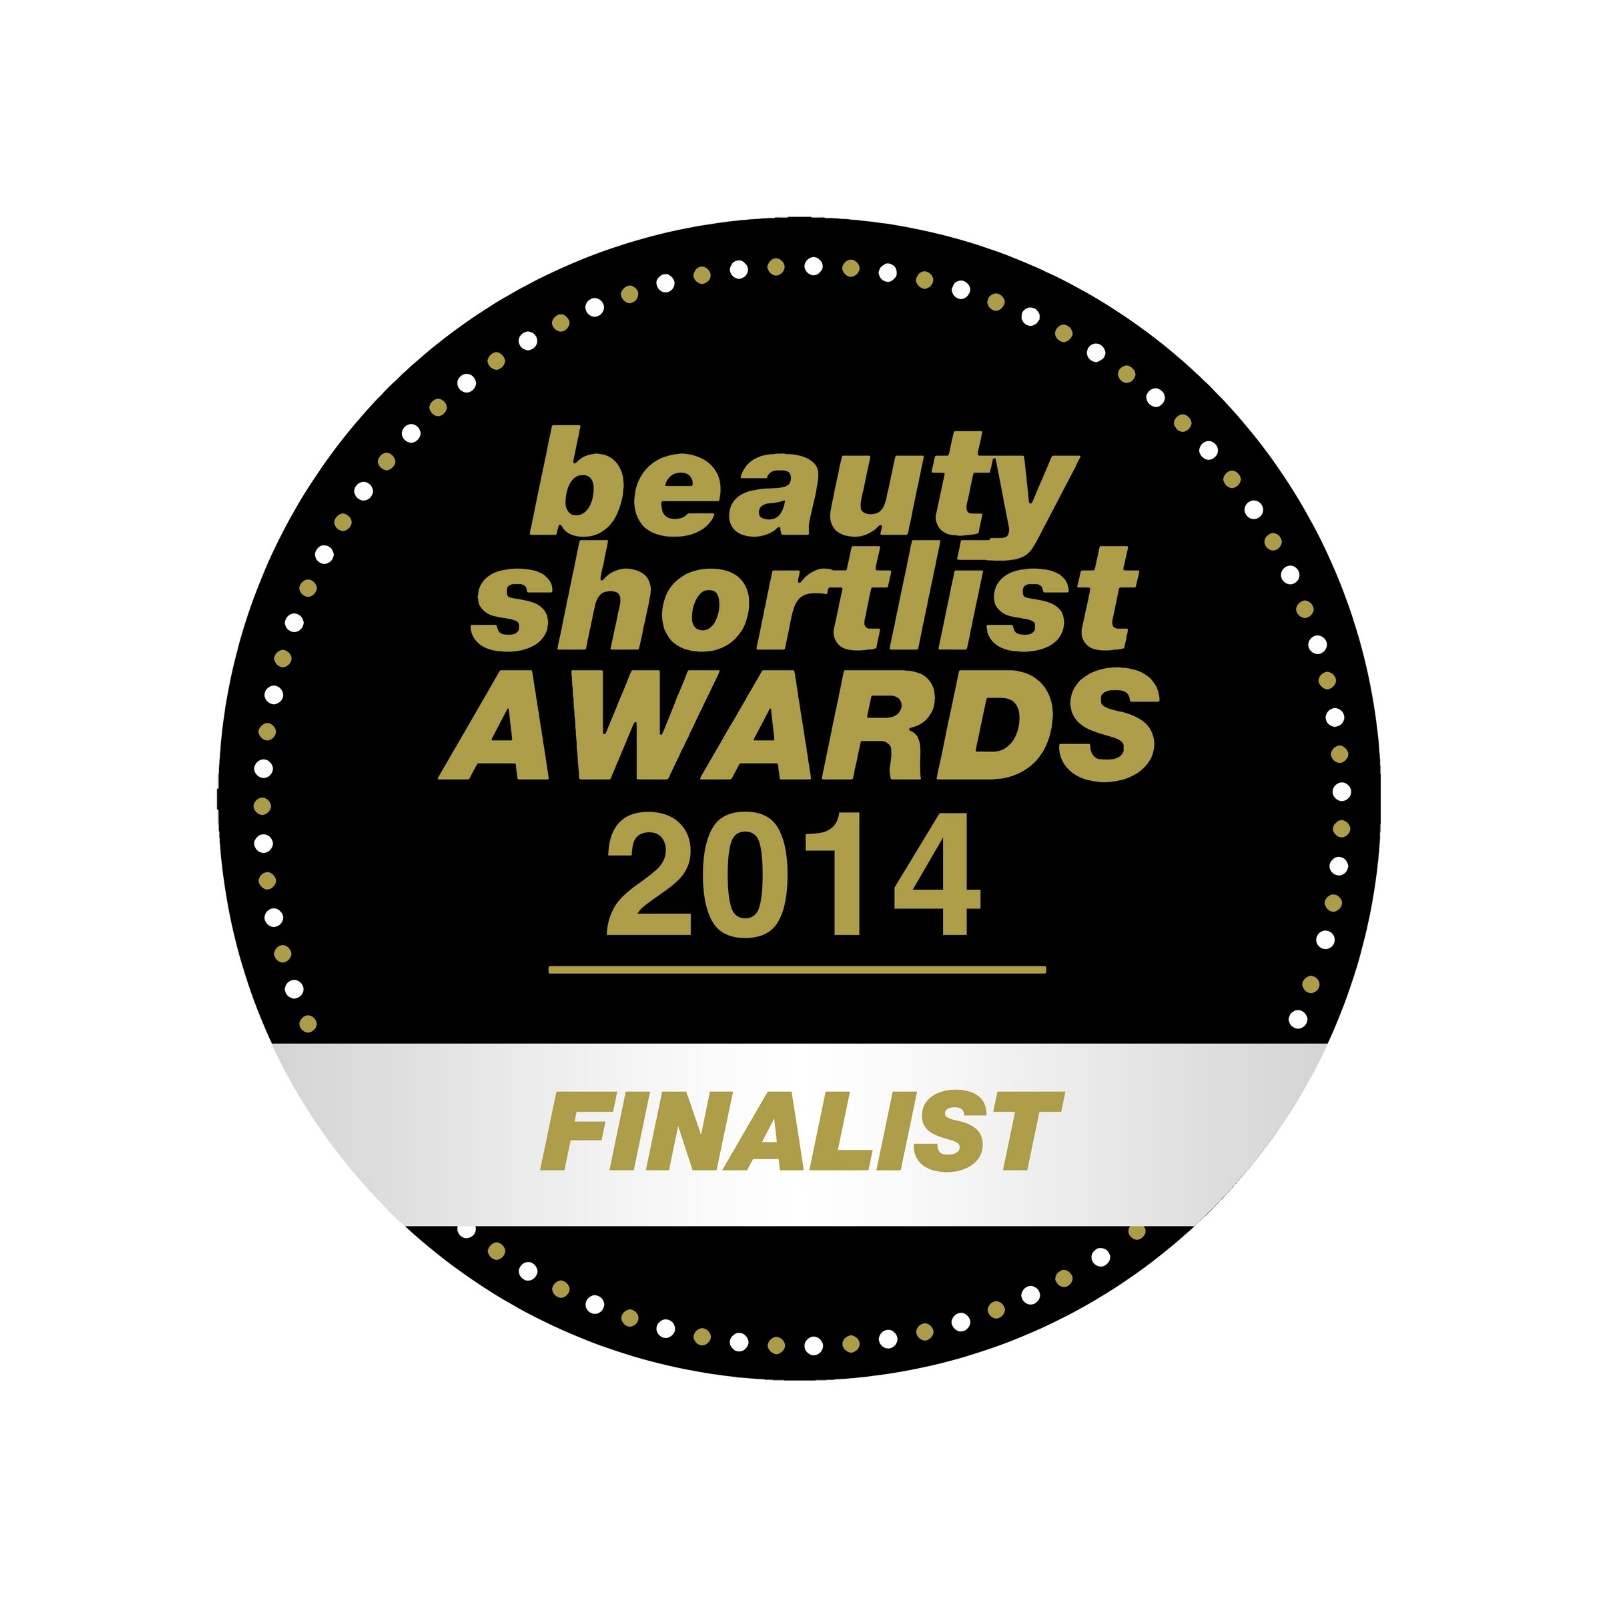 Finalist in the Beauty Shortlist Awards for Best Shampoo; Revive and Shine Natural Shampoo